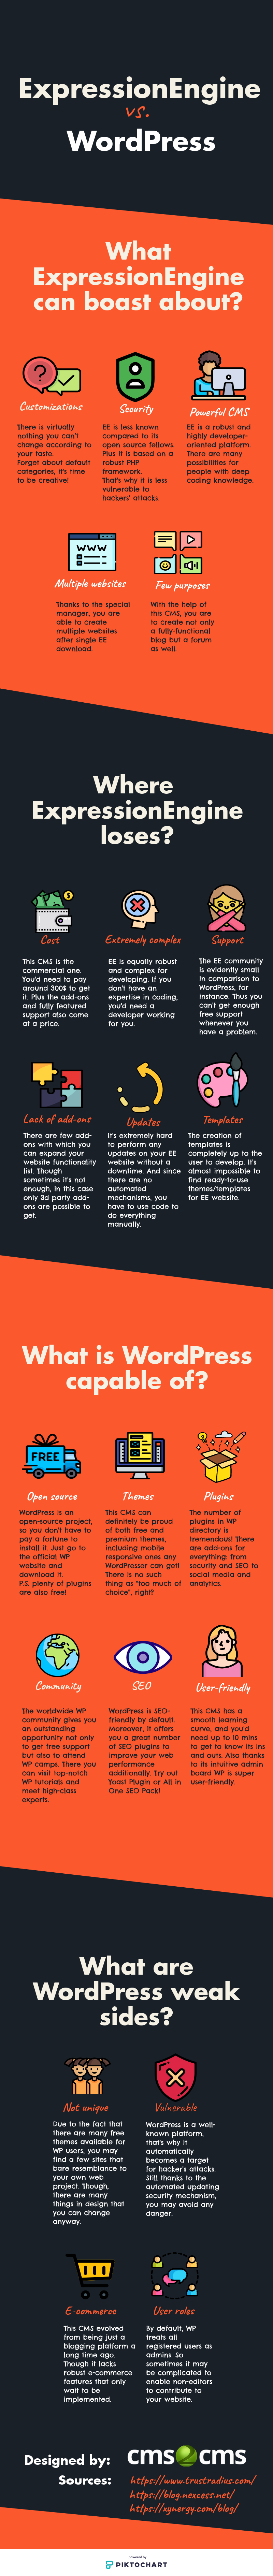 expression-engine-vs-word-press-pros-and-cons